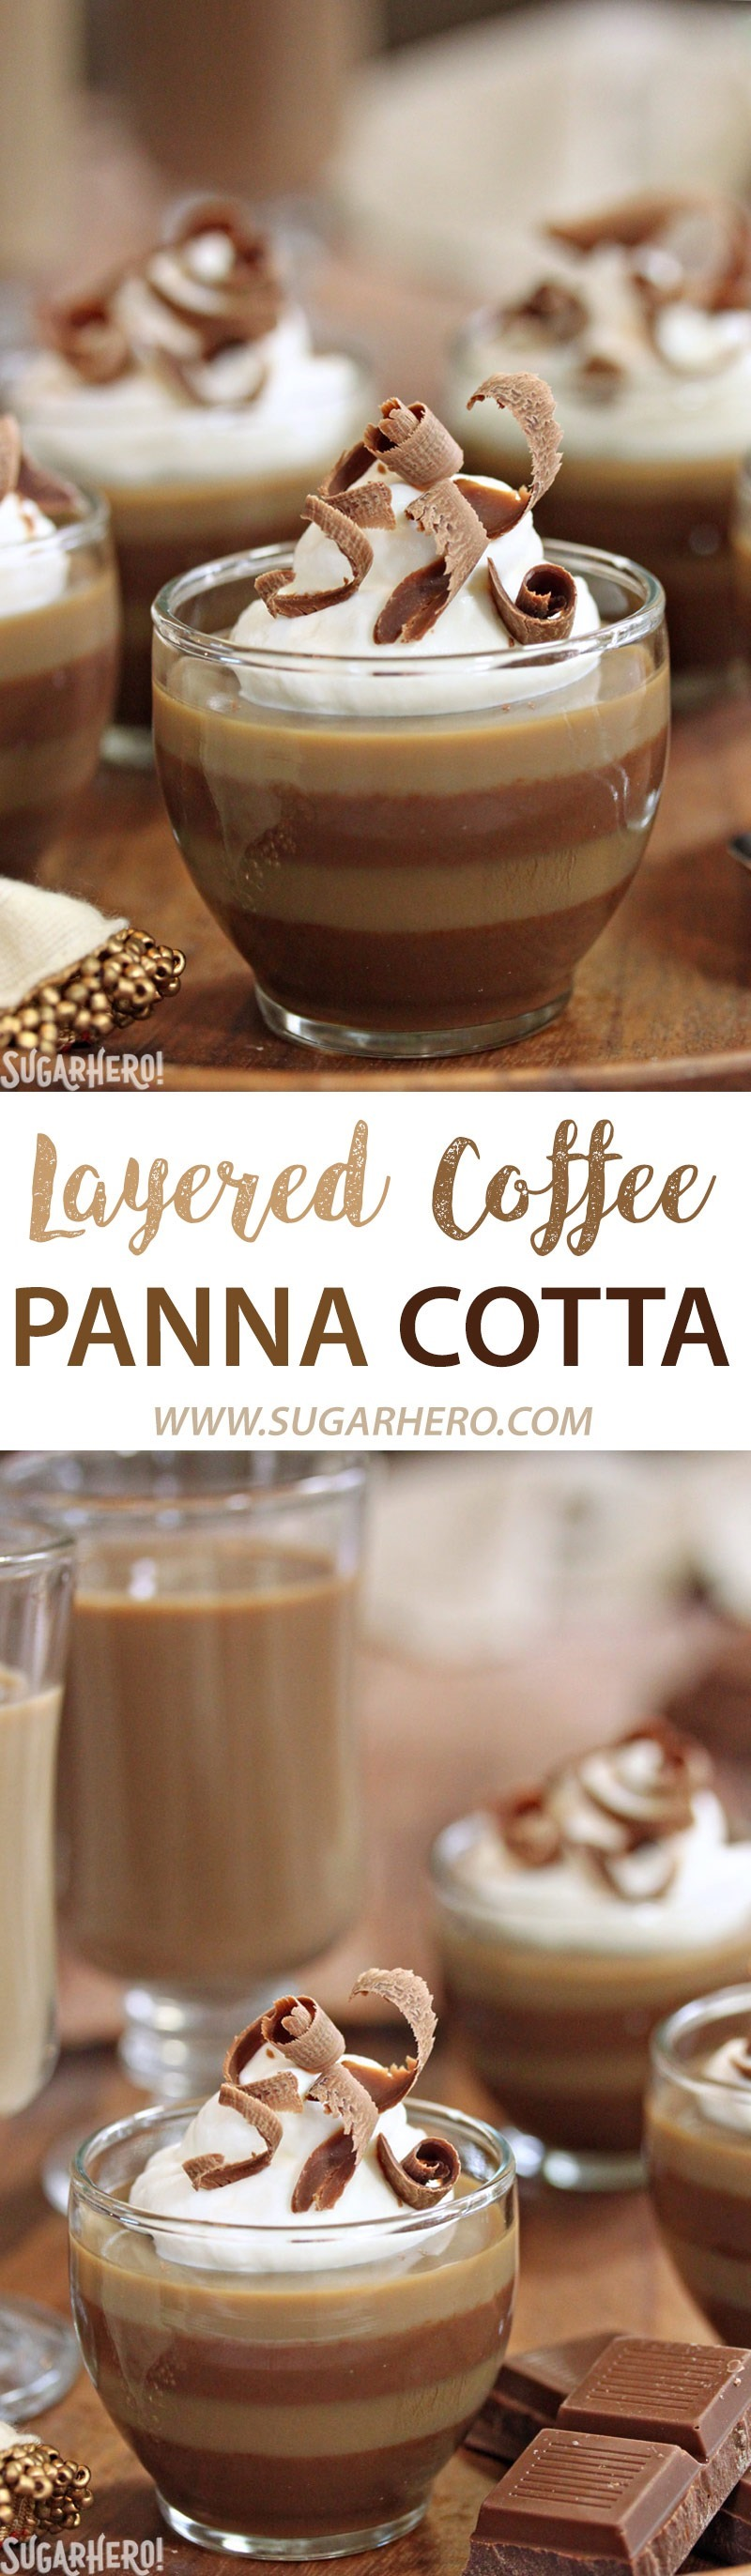 Layered Coffee Panna Cotta | From SugarHero.com